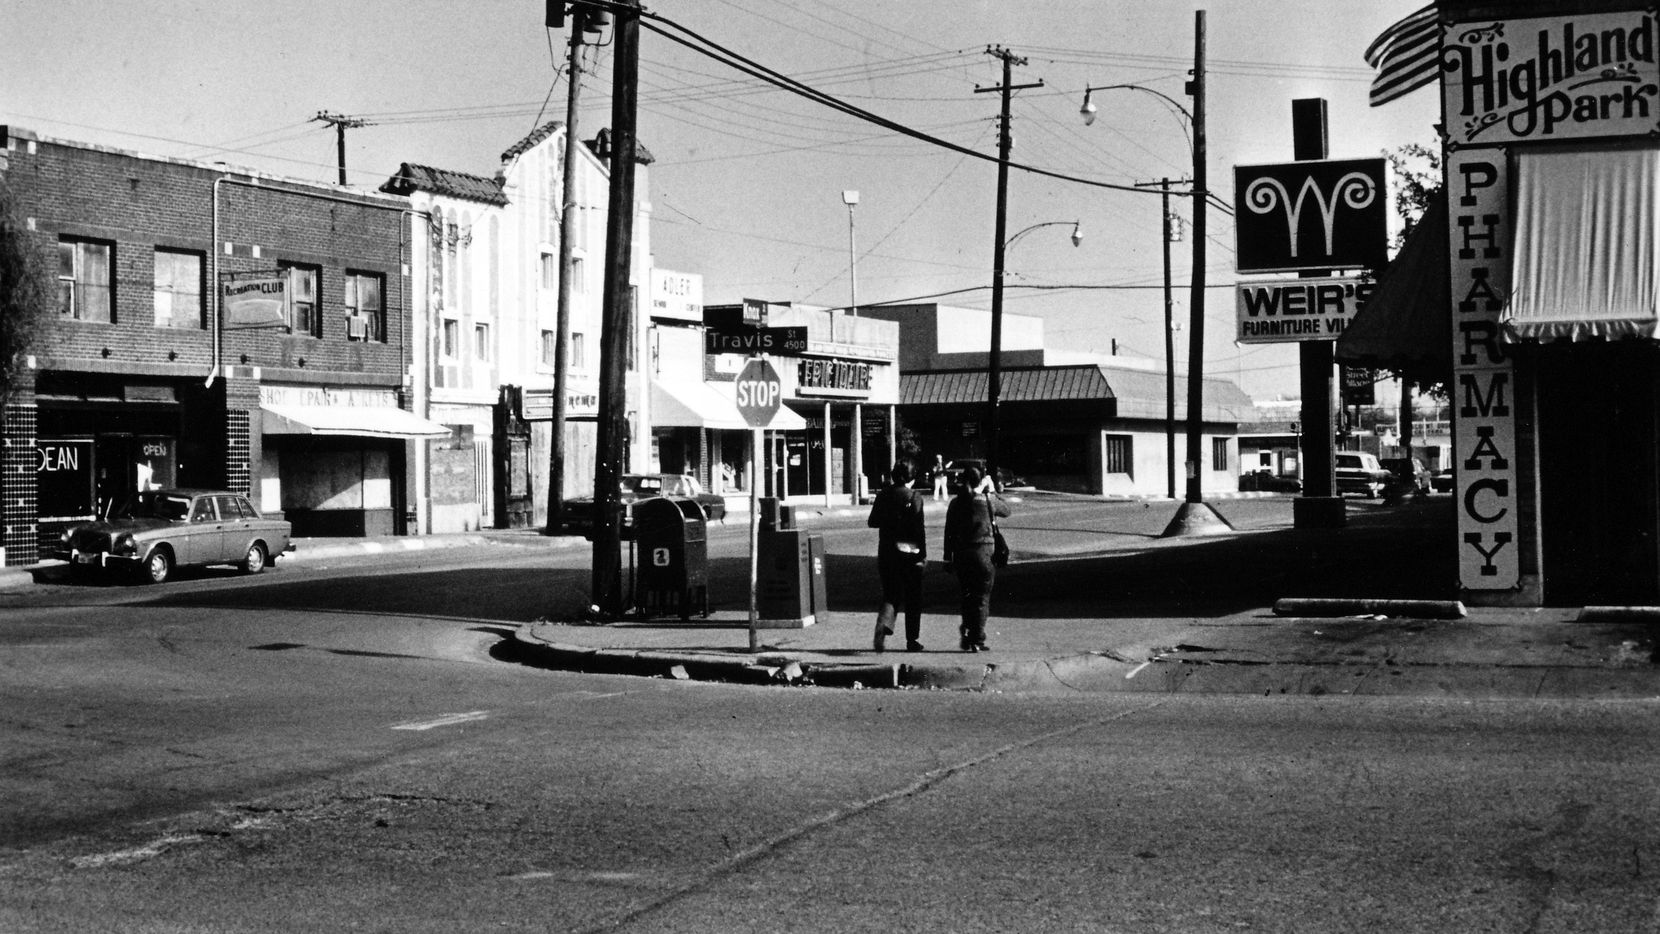 PUBLISHED January 14, 1984 - Knox Street at Travis - Highland Park Pharmacy - Weir's Furniture Village